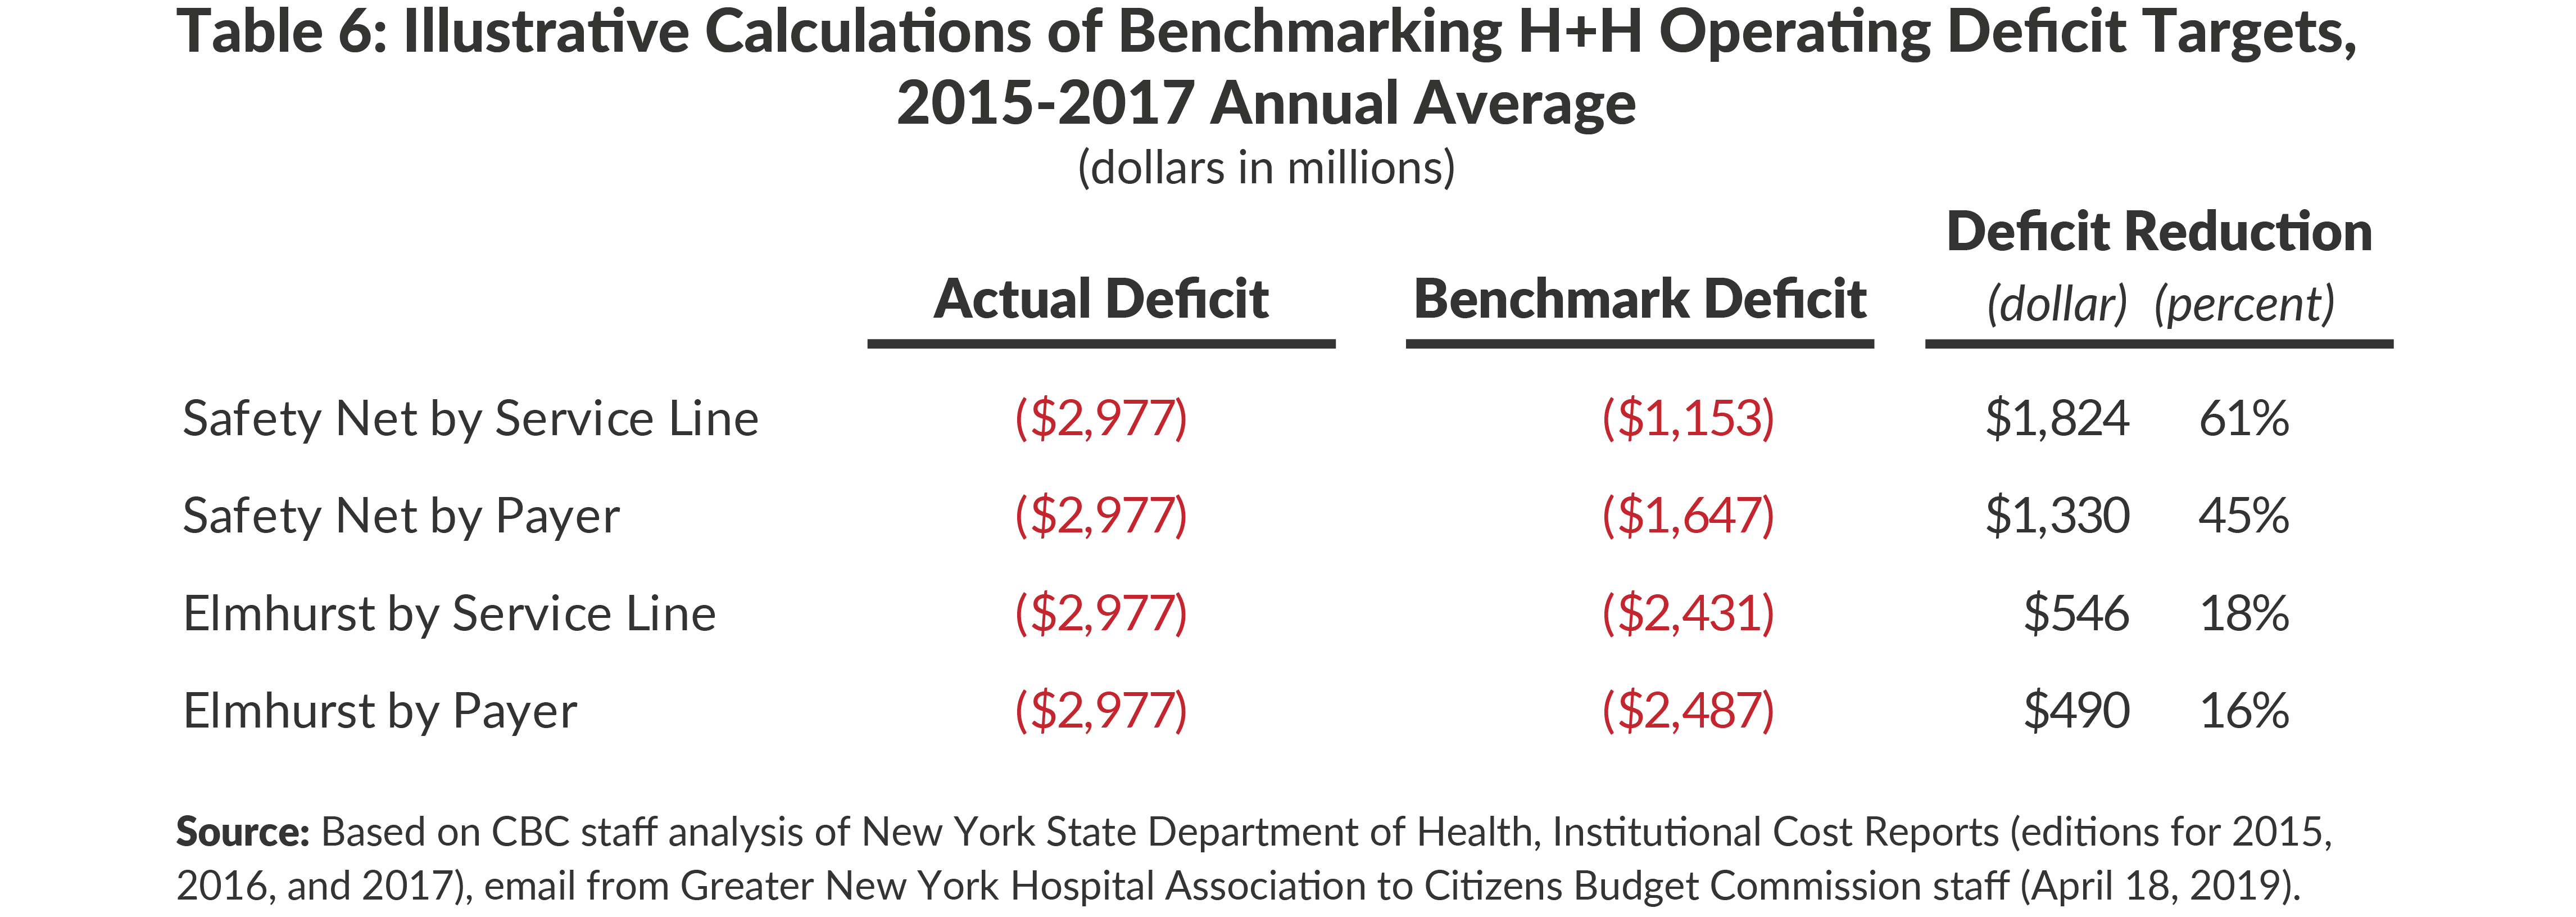 Table 6: Illustrative Calculations of Benchmarking H+H Patient Services Deficit Targets, 2015-2017 Annual Average